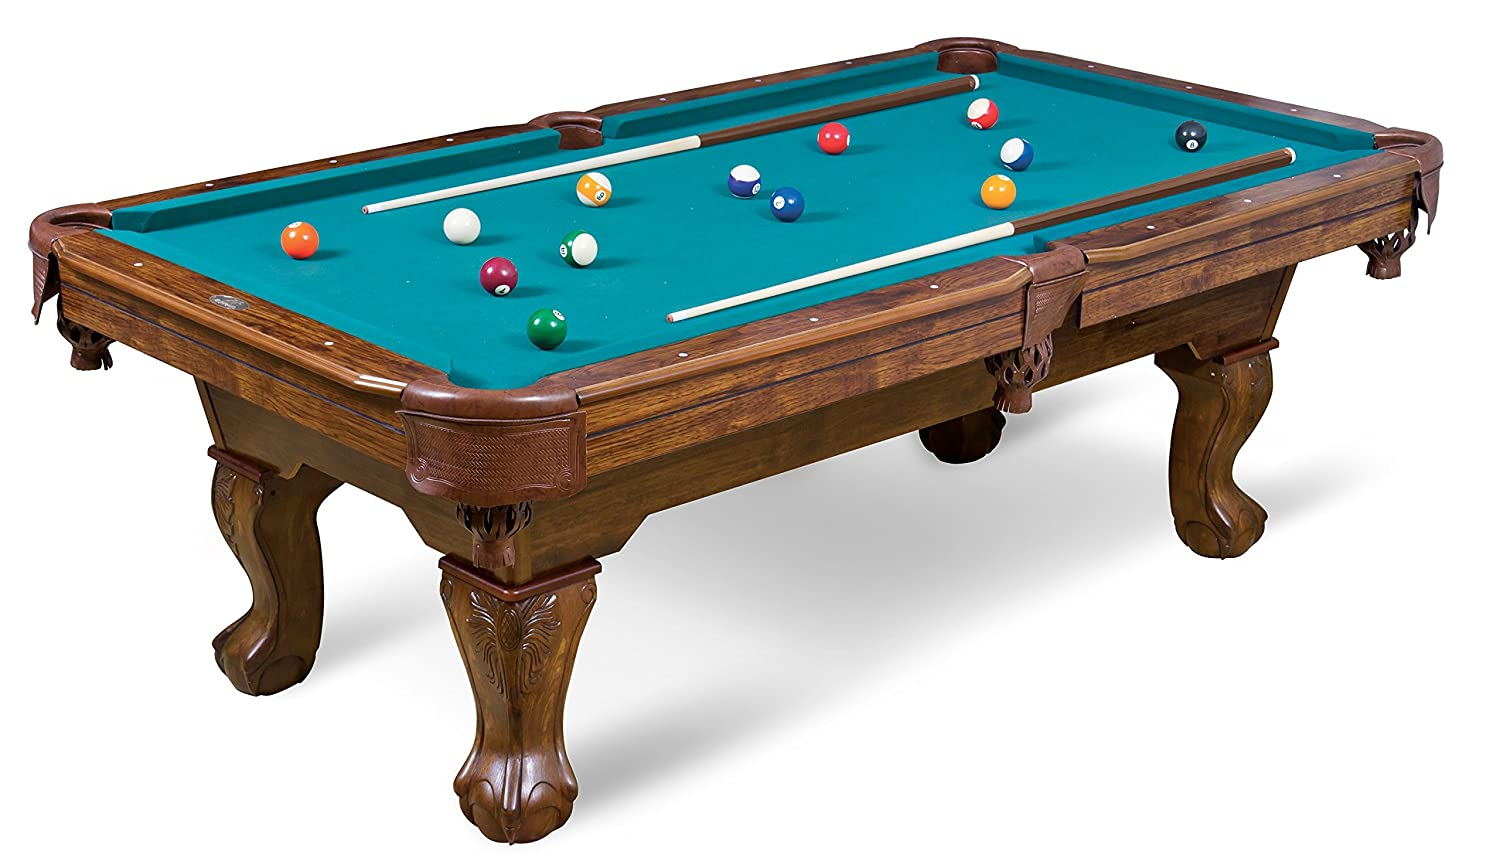 Amazoncom EastPoint Sports Brighton Billiard Table Inch - Billiard table and accessories